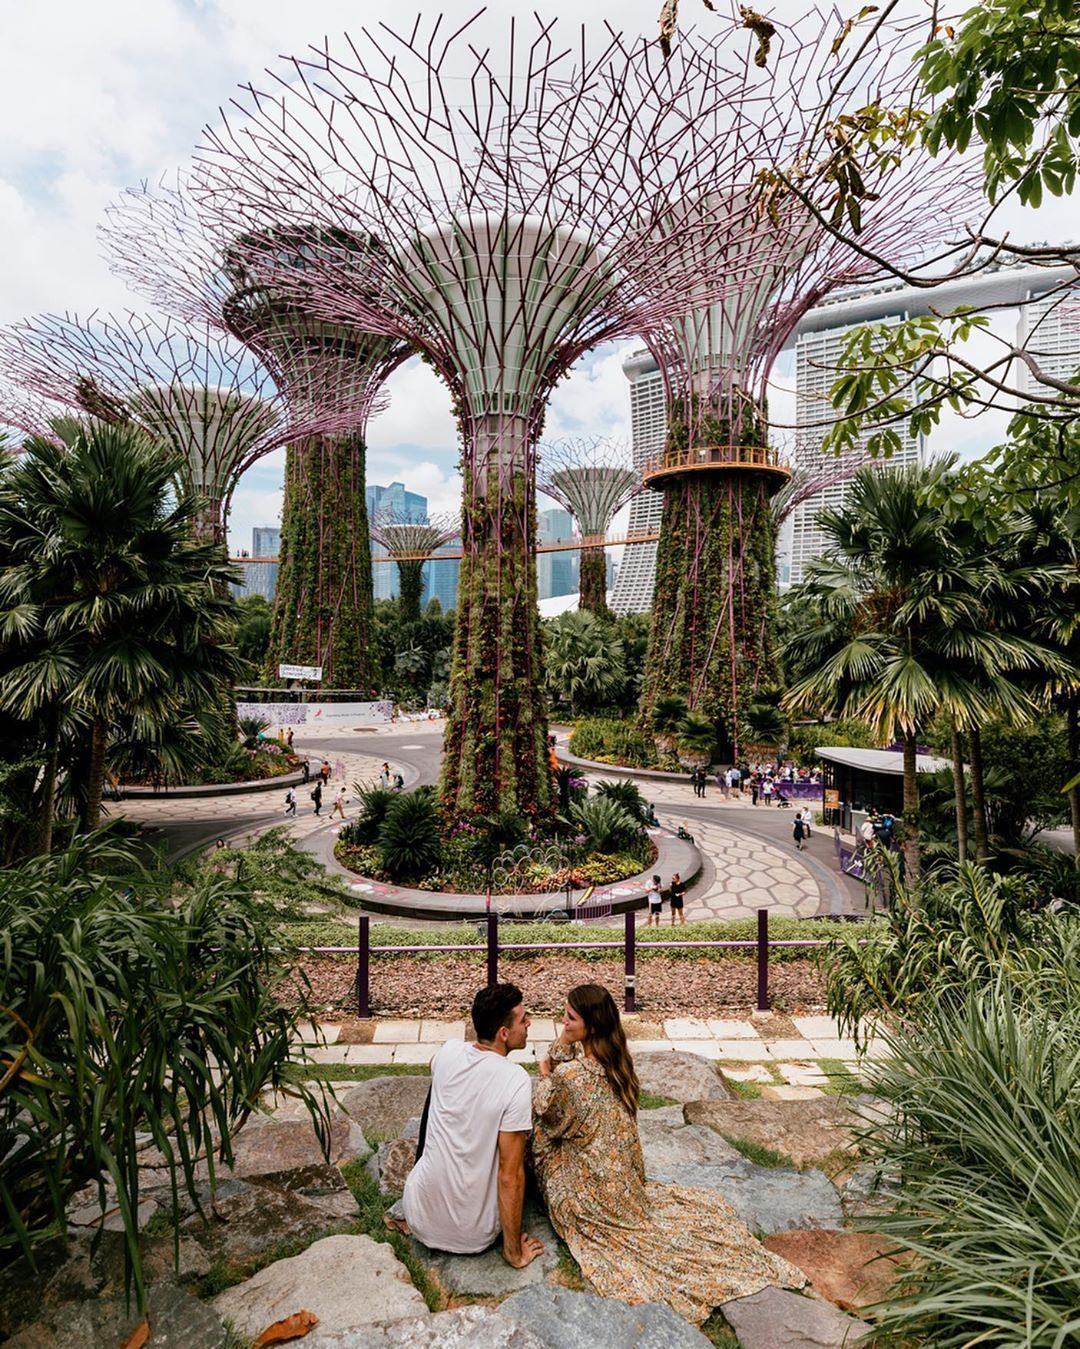 384492abf640829a27aa157b4bc50153 - Supertree Grove Gardens By The Bay Singapore